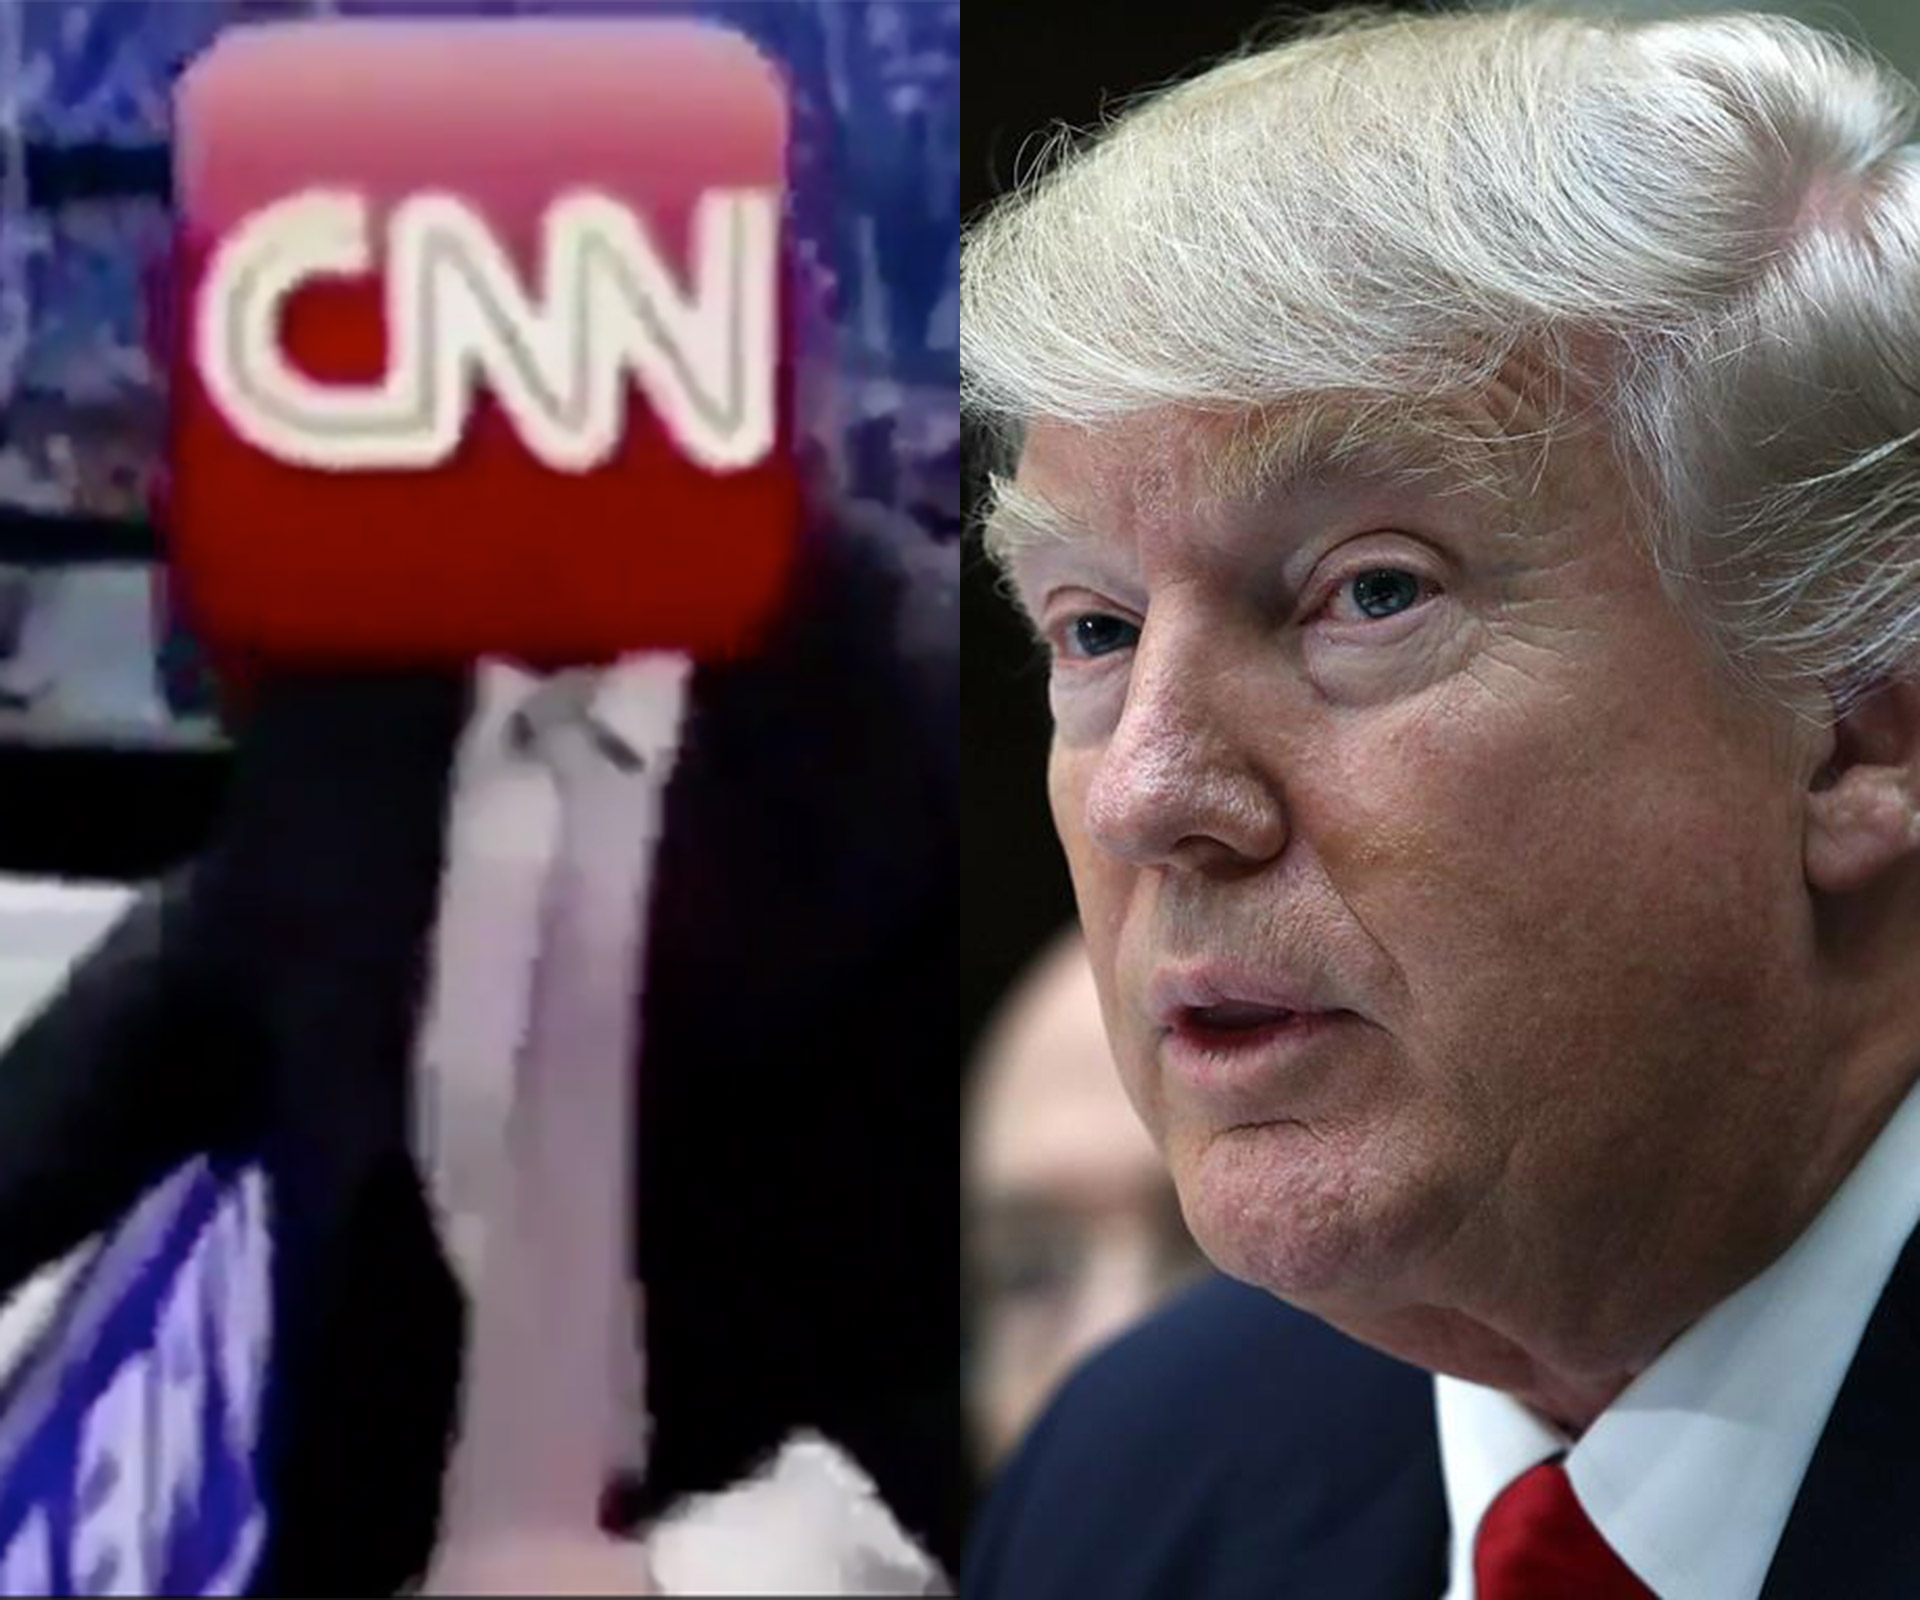 CNN Responds To Trump's Body Slam